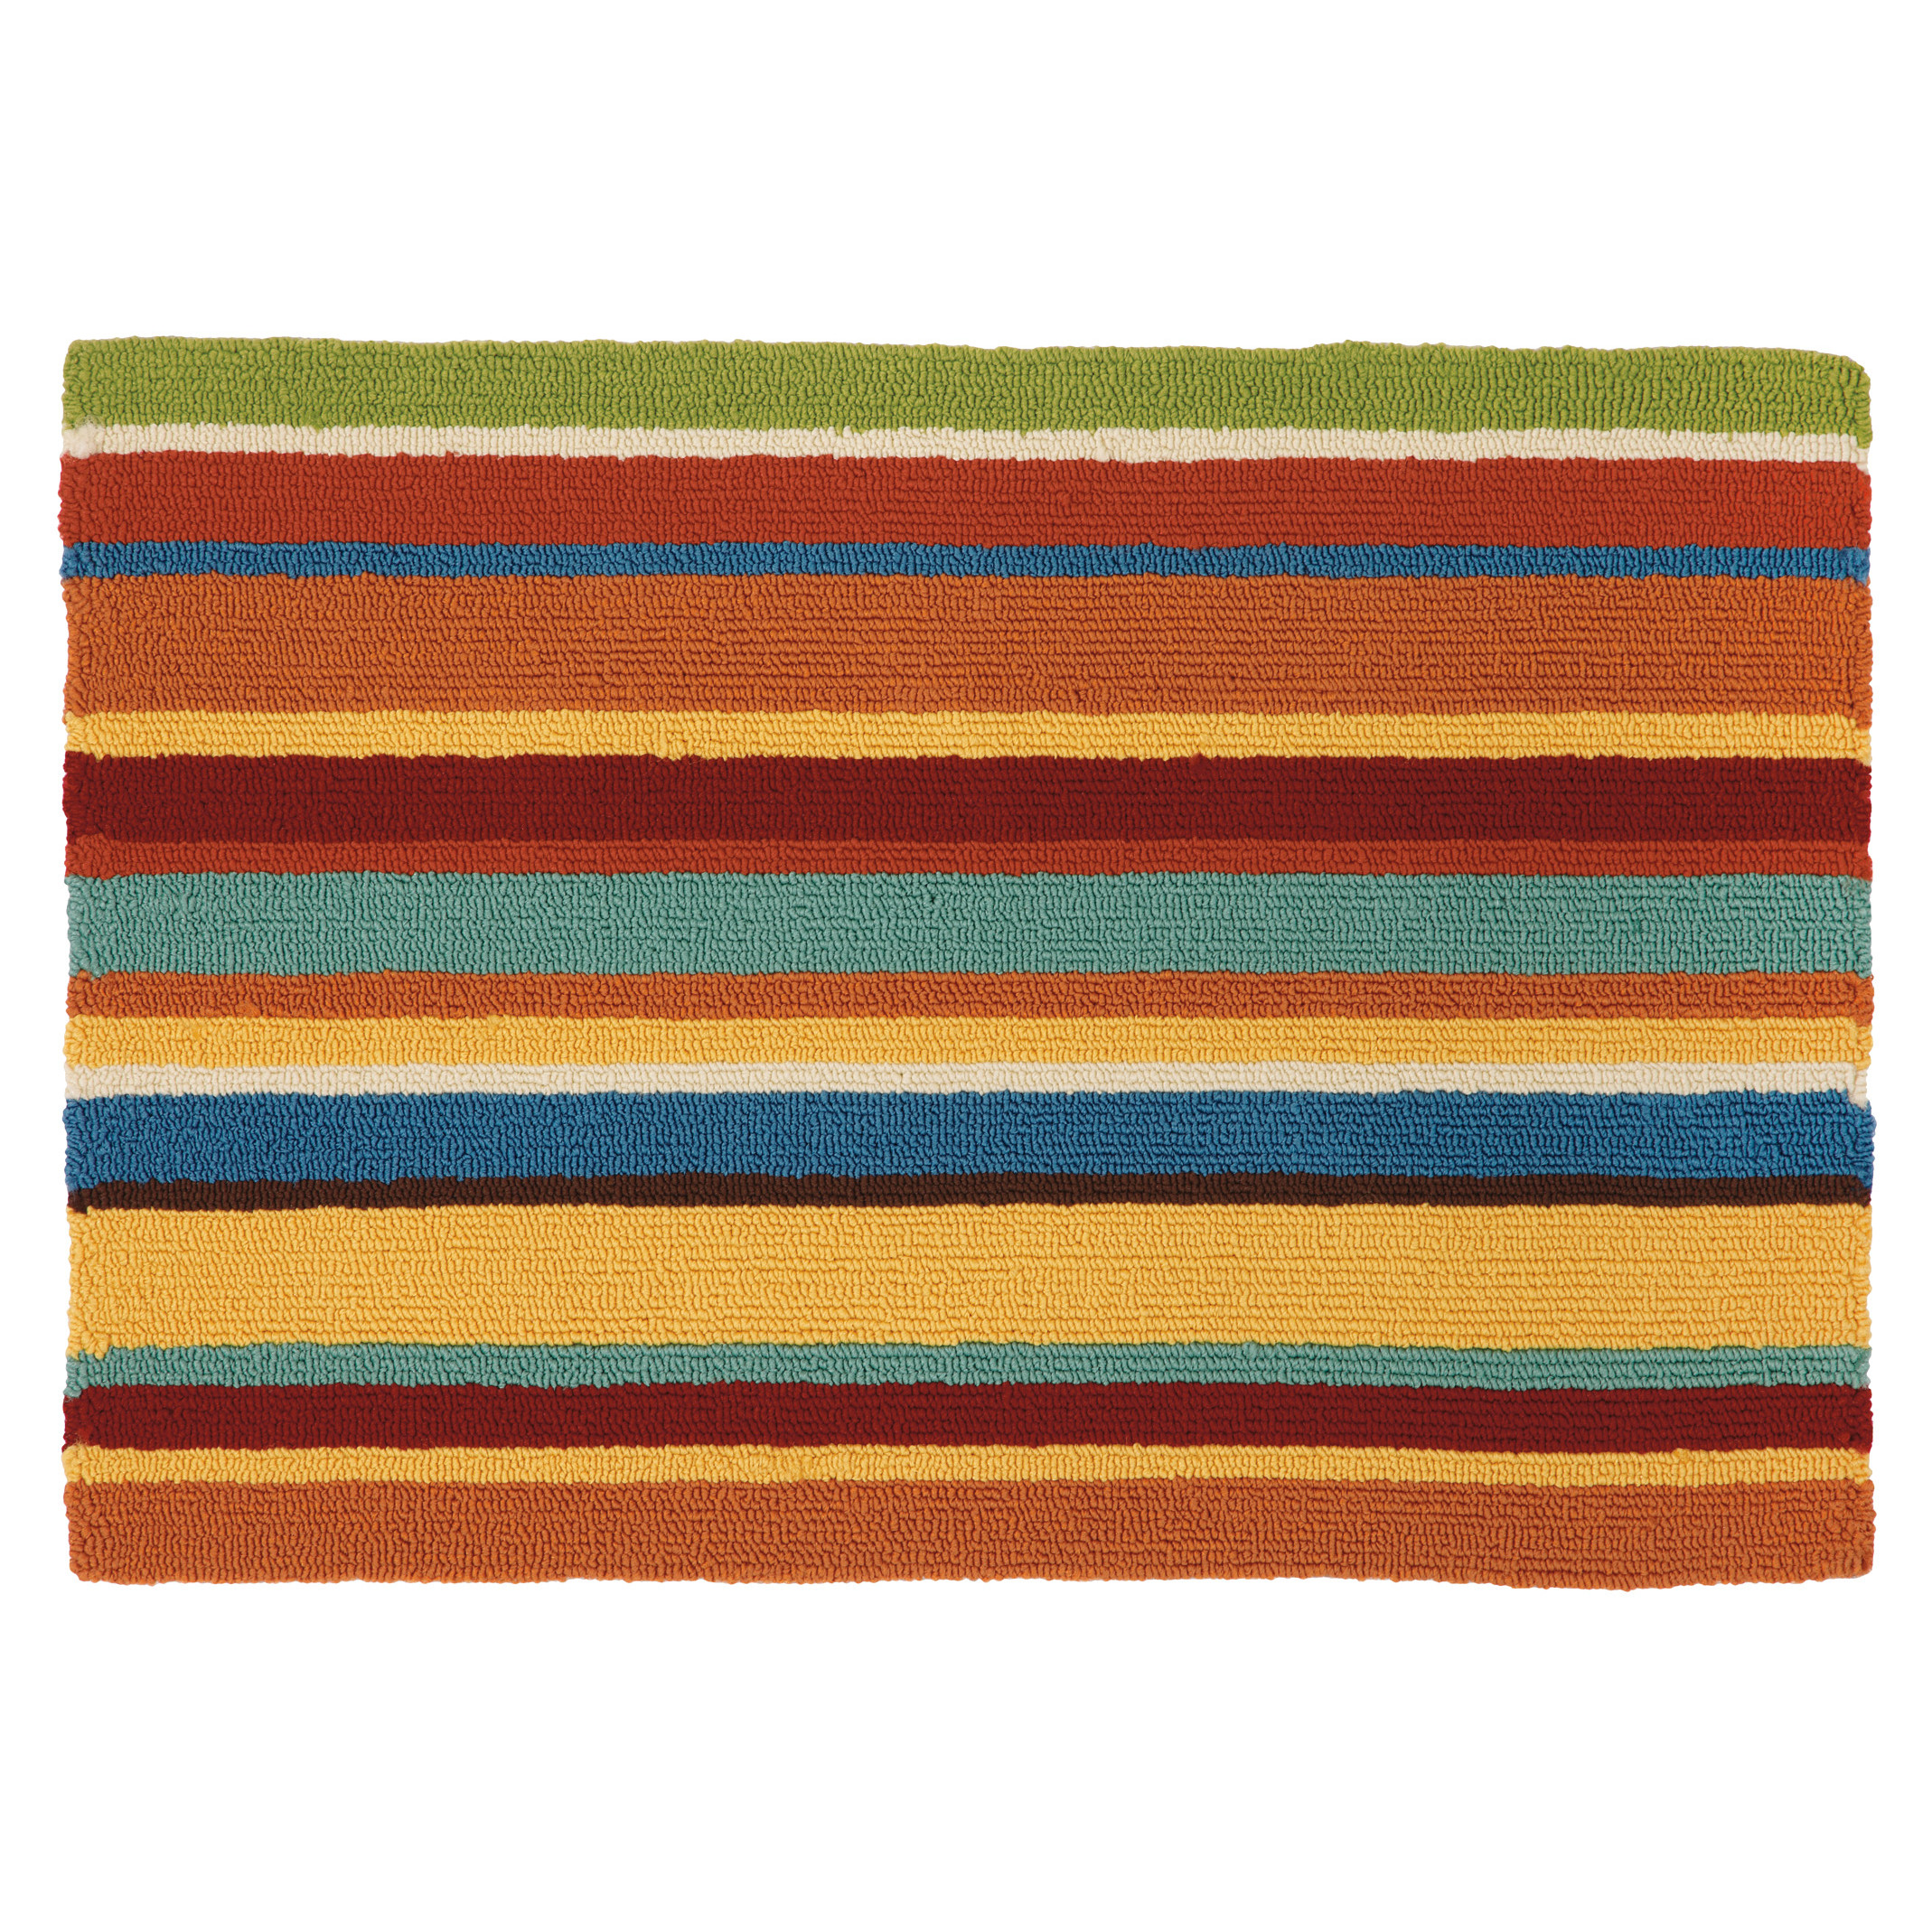 Orange Stripe Color Decorative Design company c rugs with harmony colors for indoor or outdoor ideas